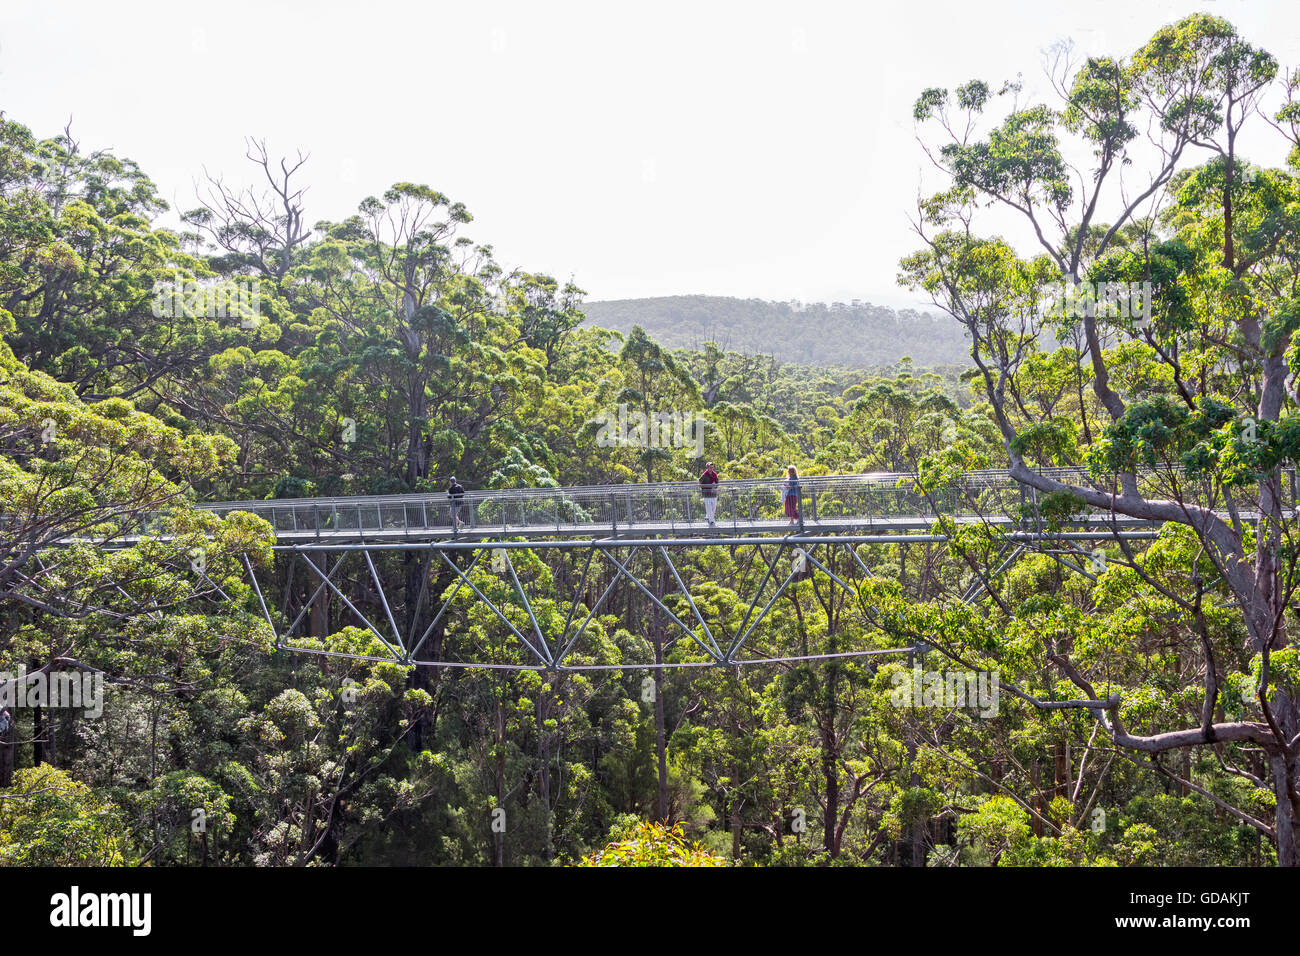 Walpole, Australia, April 2, 2016: Tourists enjoying the Tree Top Walk in the Valley of the Giants in Western Australia. - Stock Image